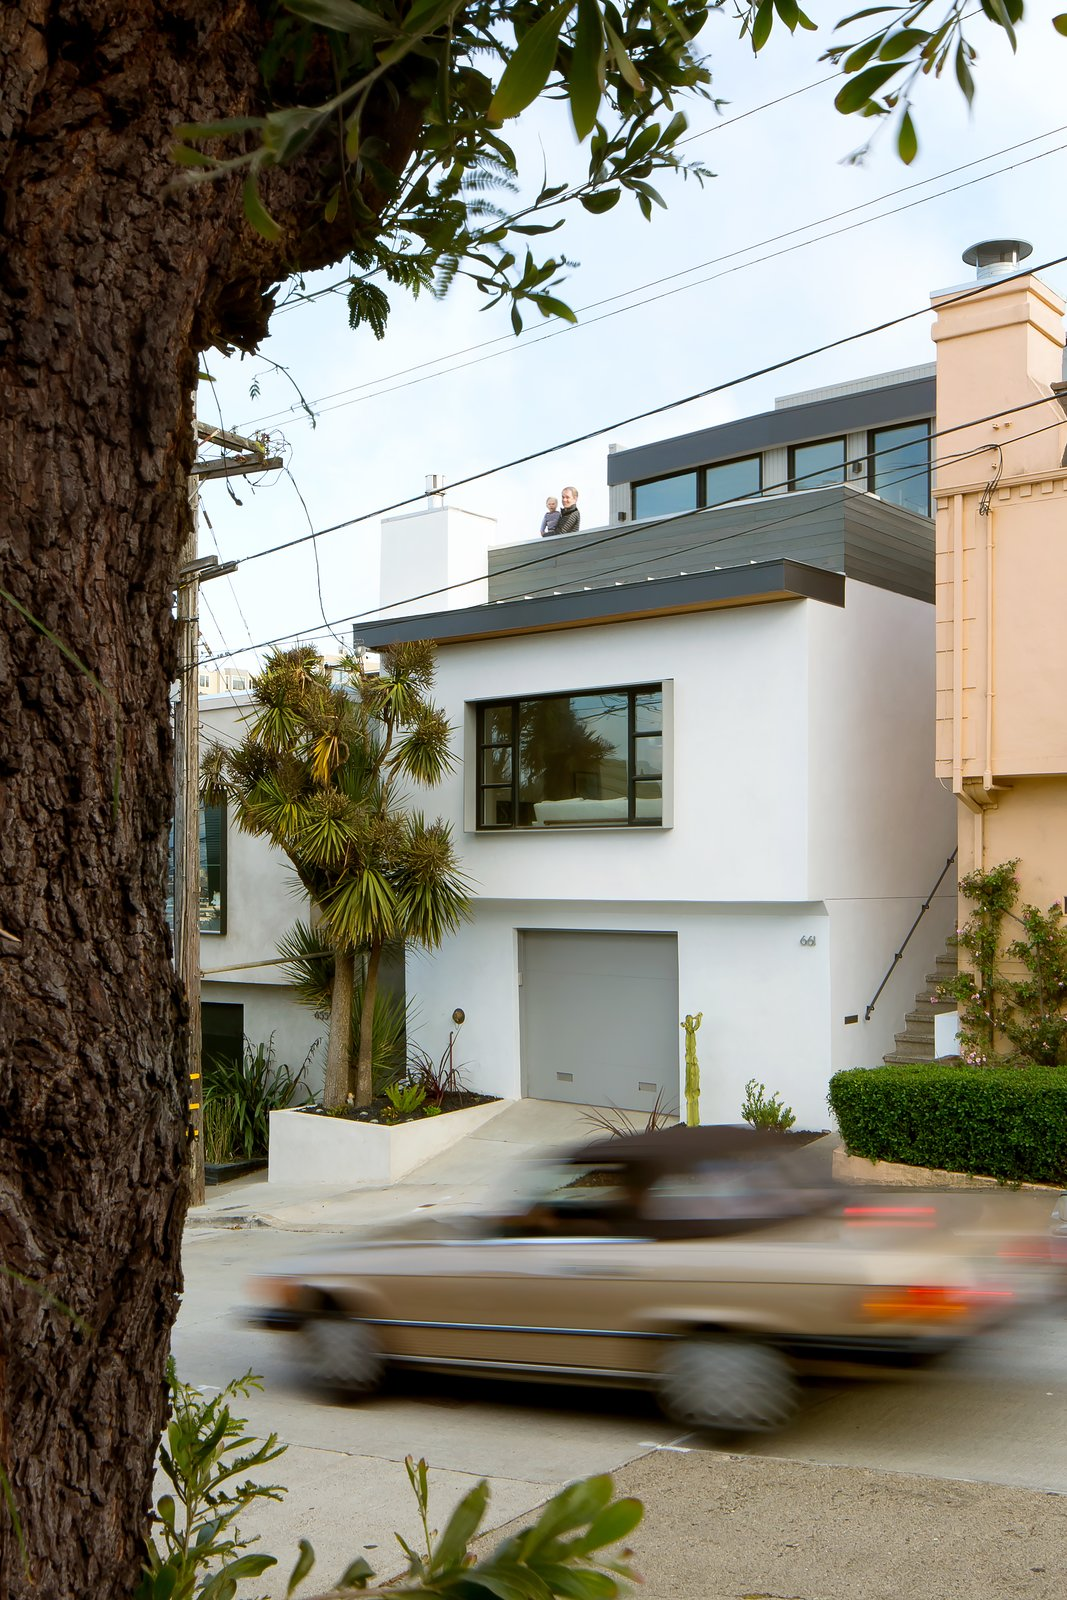 Exterior and House Building Type Front facade  27th Street - Noe Valley by patrick perez/designpad architecture